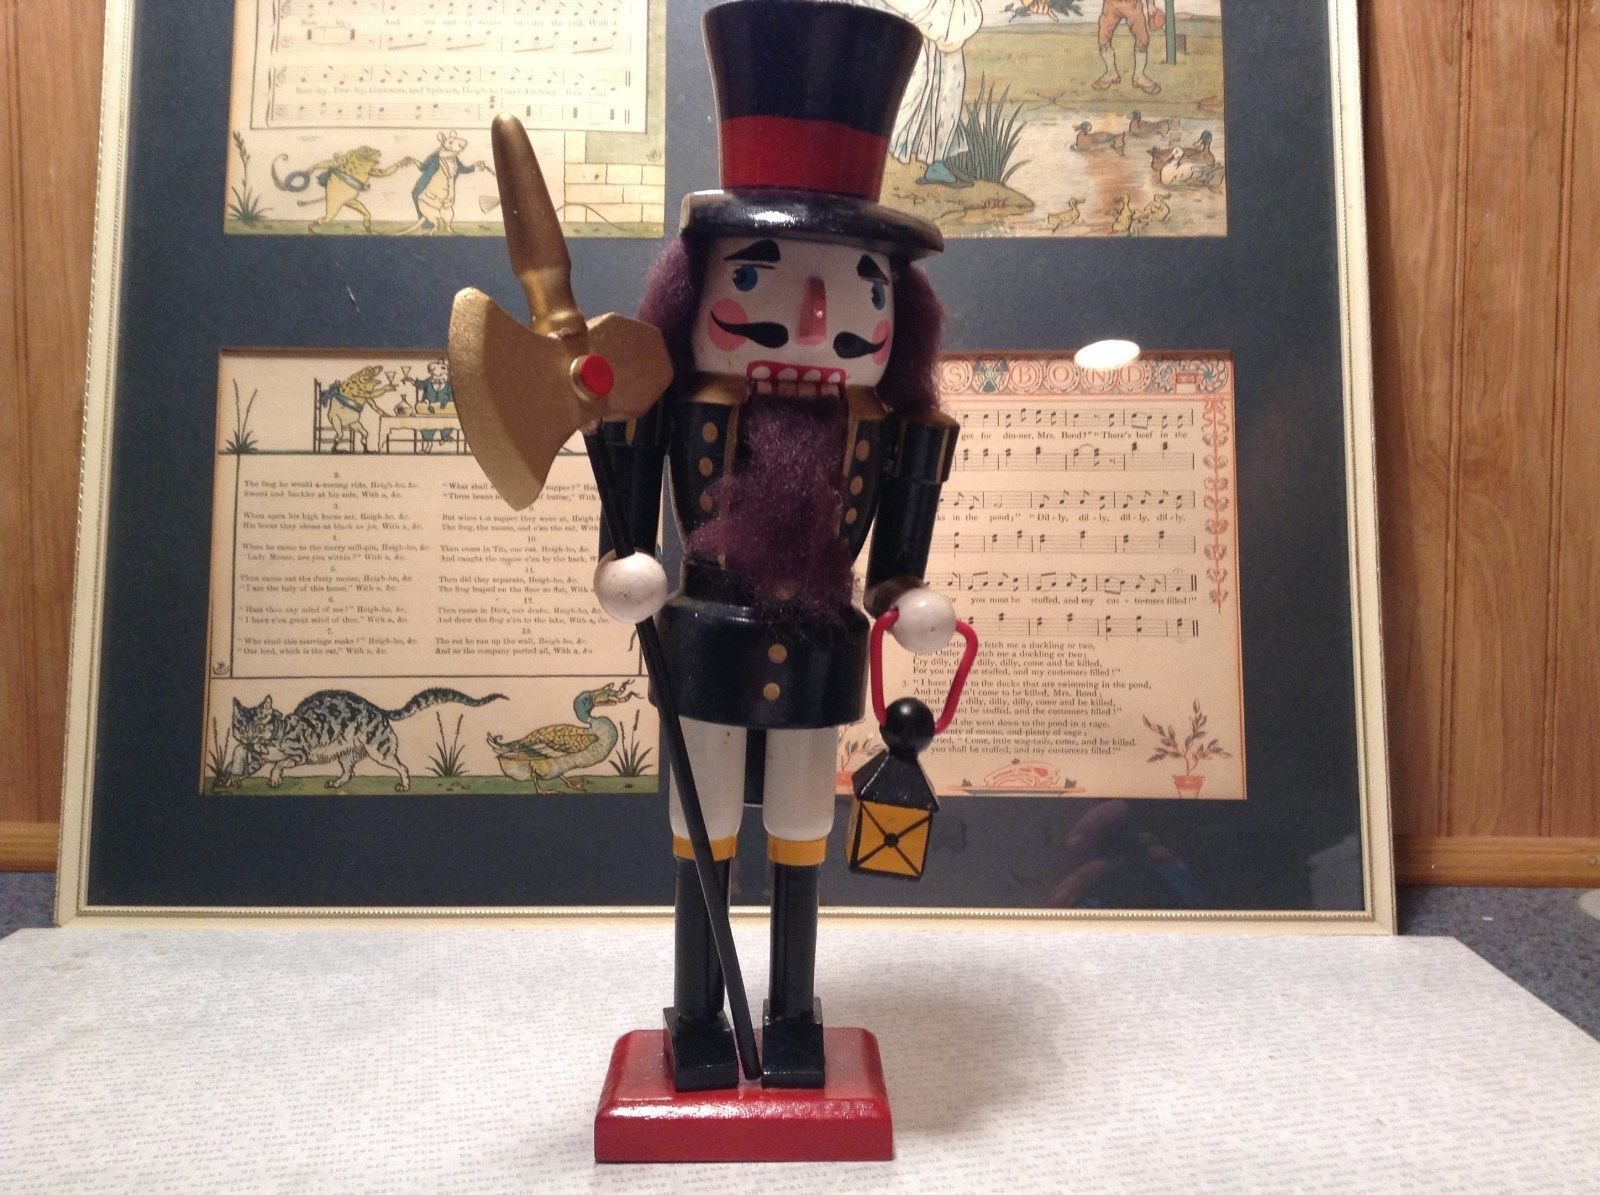 Cute Vintage Nutcracker Soldier Holding Axe and Lantern